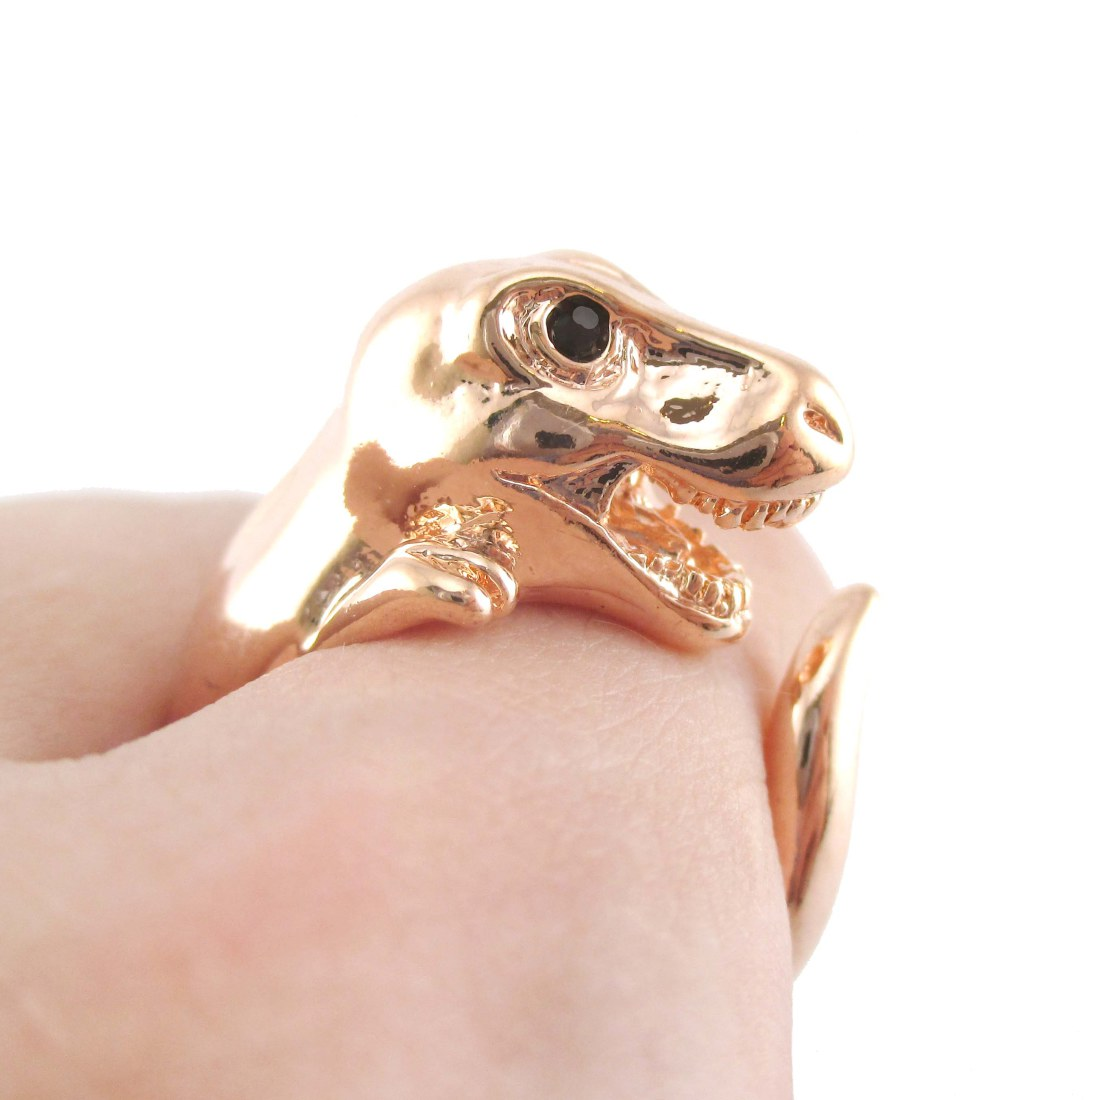 us rex shiny prehistoric rings around animal copper in shaped dinosaur products ring to wrap original sizes t